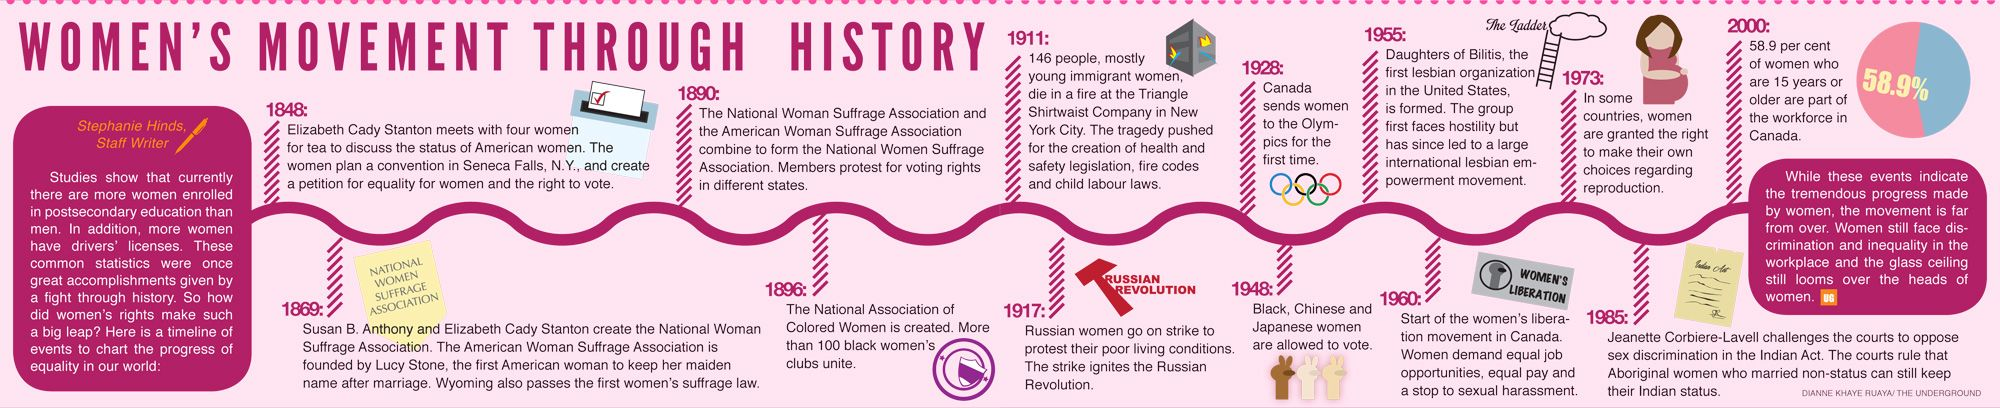 a history of womens rights in the united states The women's suffrage movement was a decades-long fight to win the right to vote for women in the united states it took activists and reformers nearly 100 years to win that right, and the .